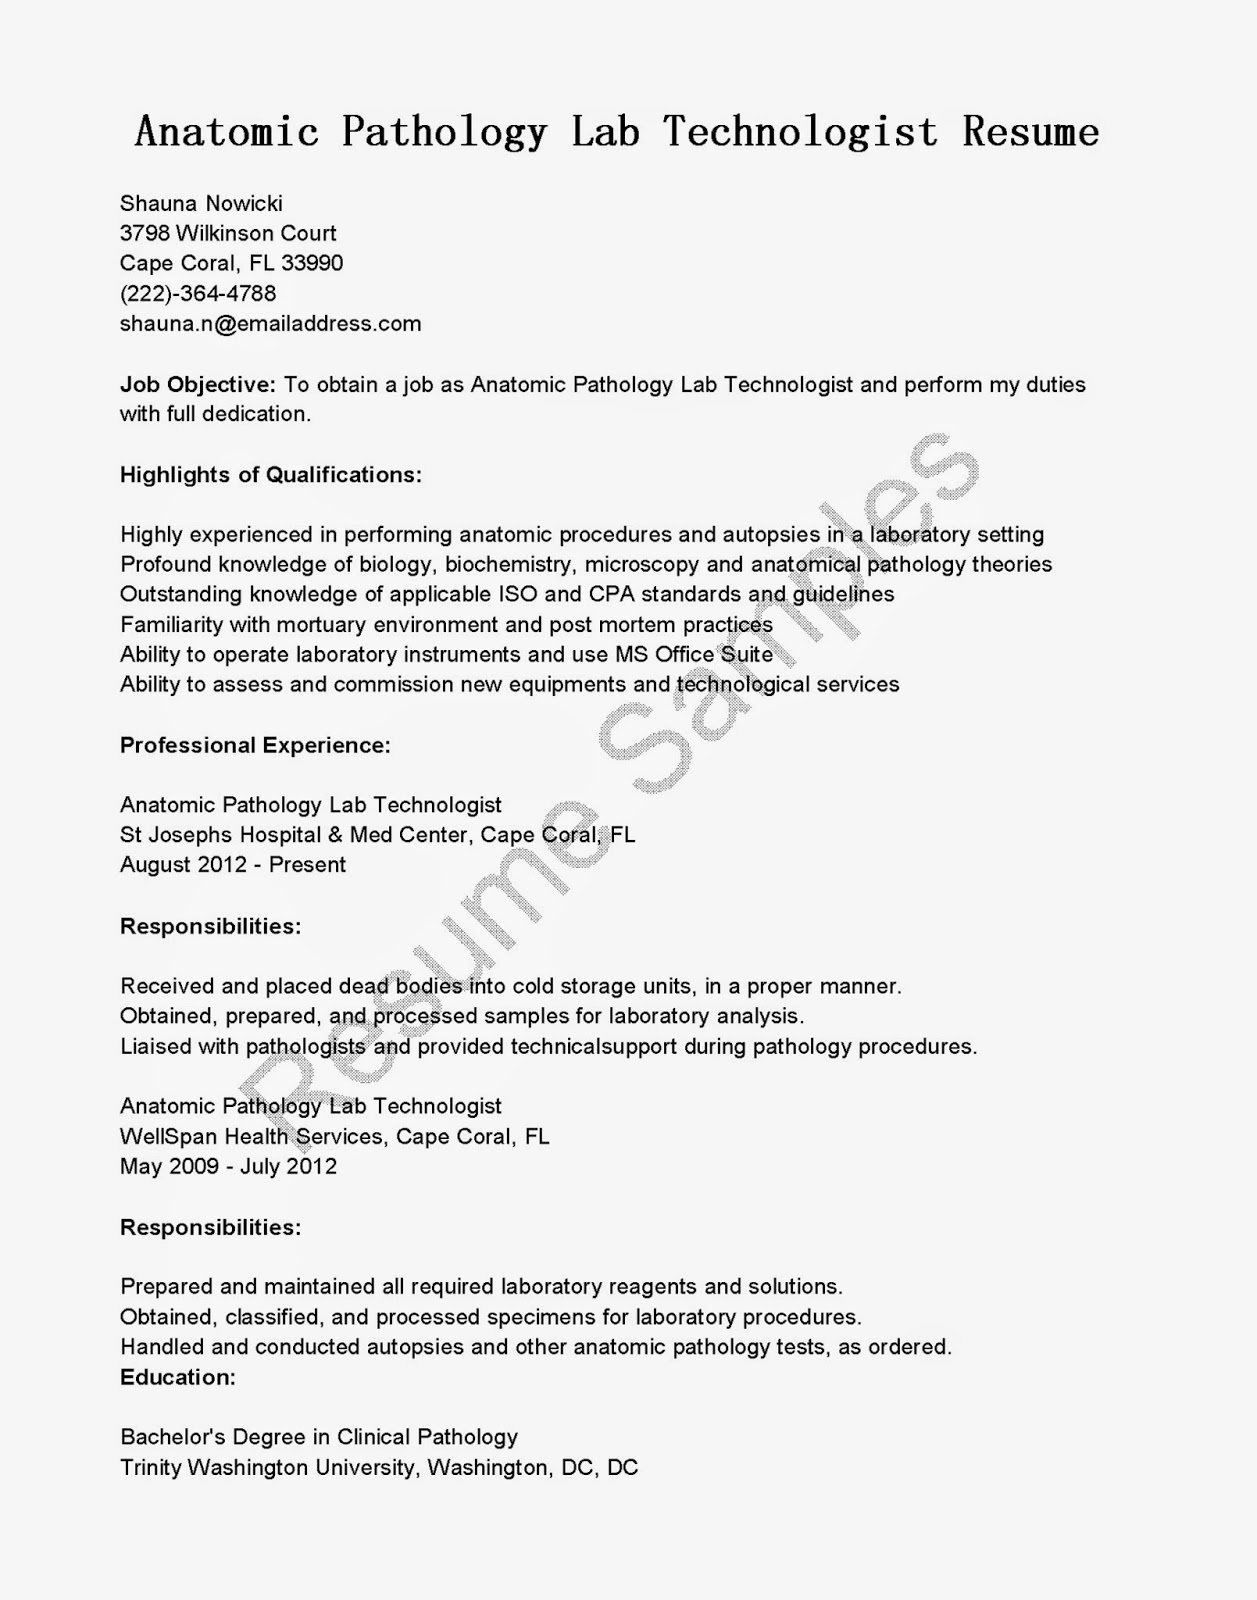 resume samples  anatomic pathology lab technologist resume